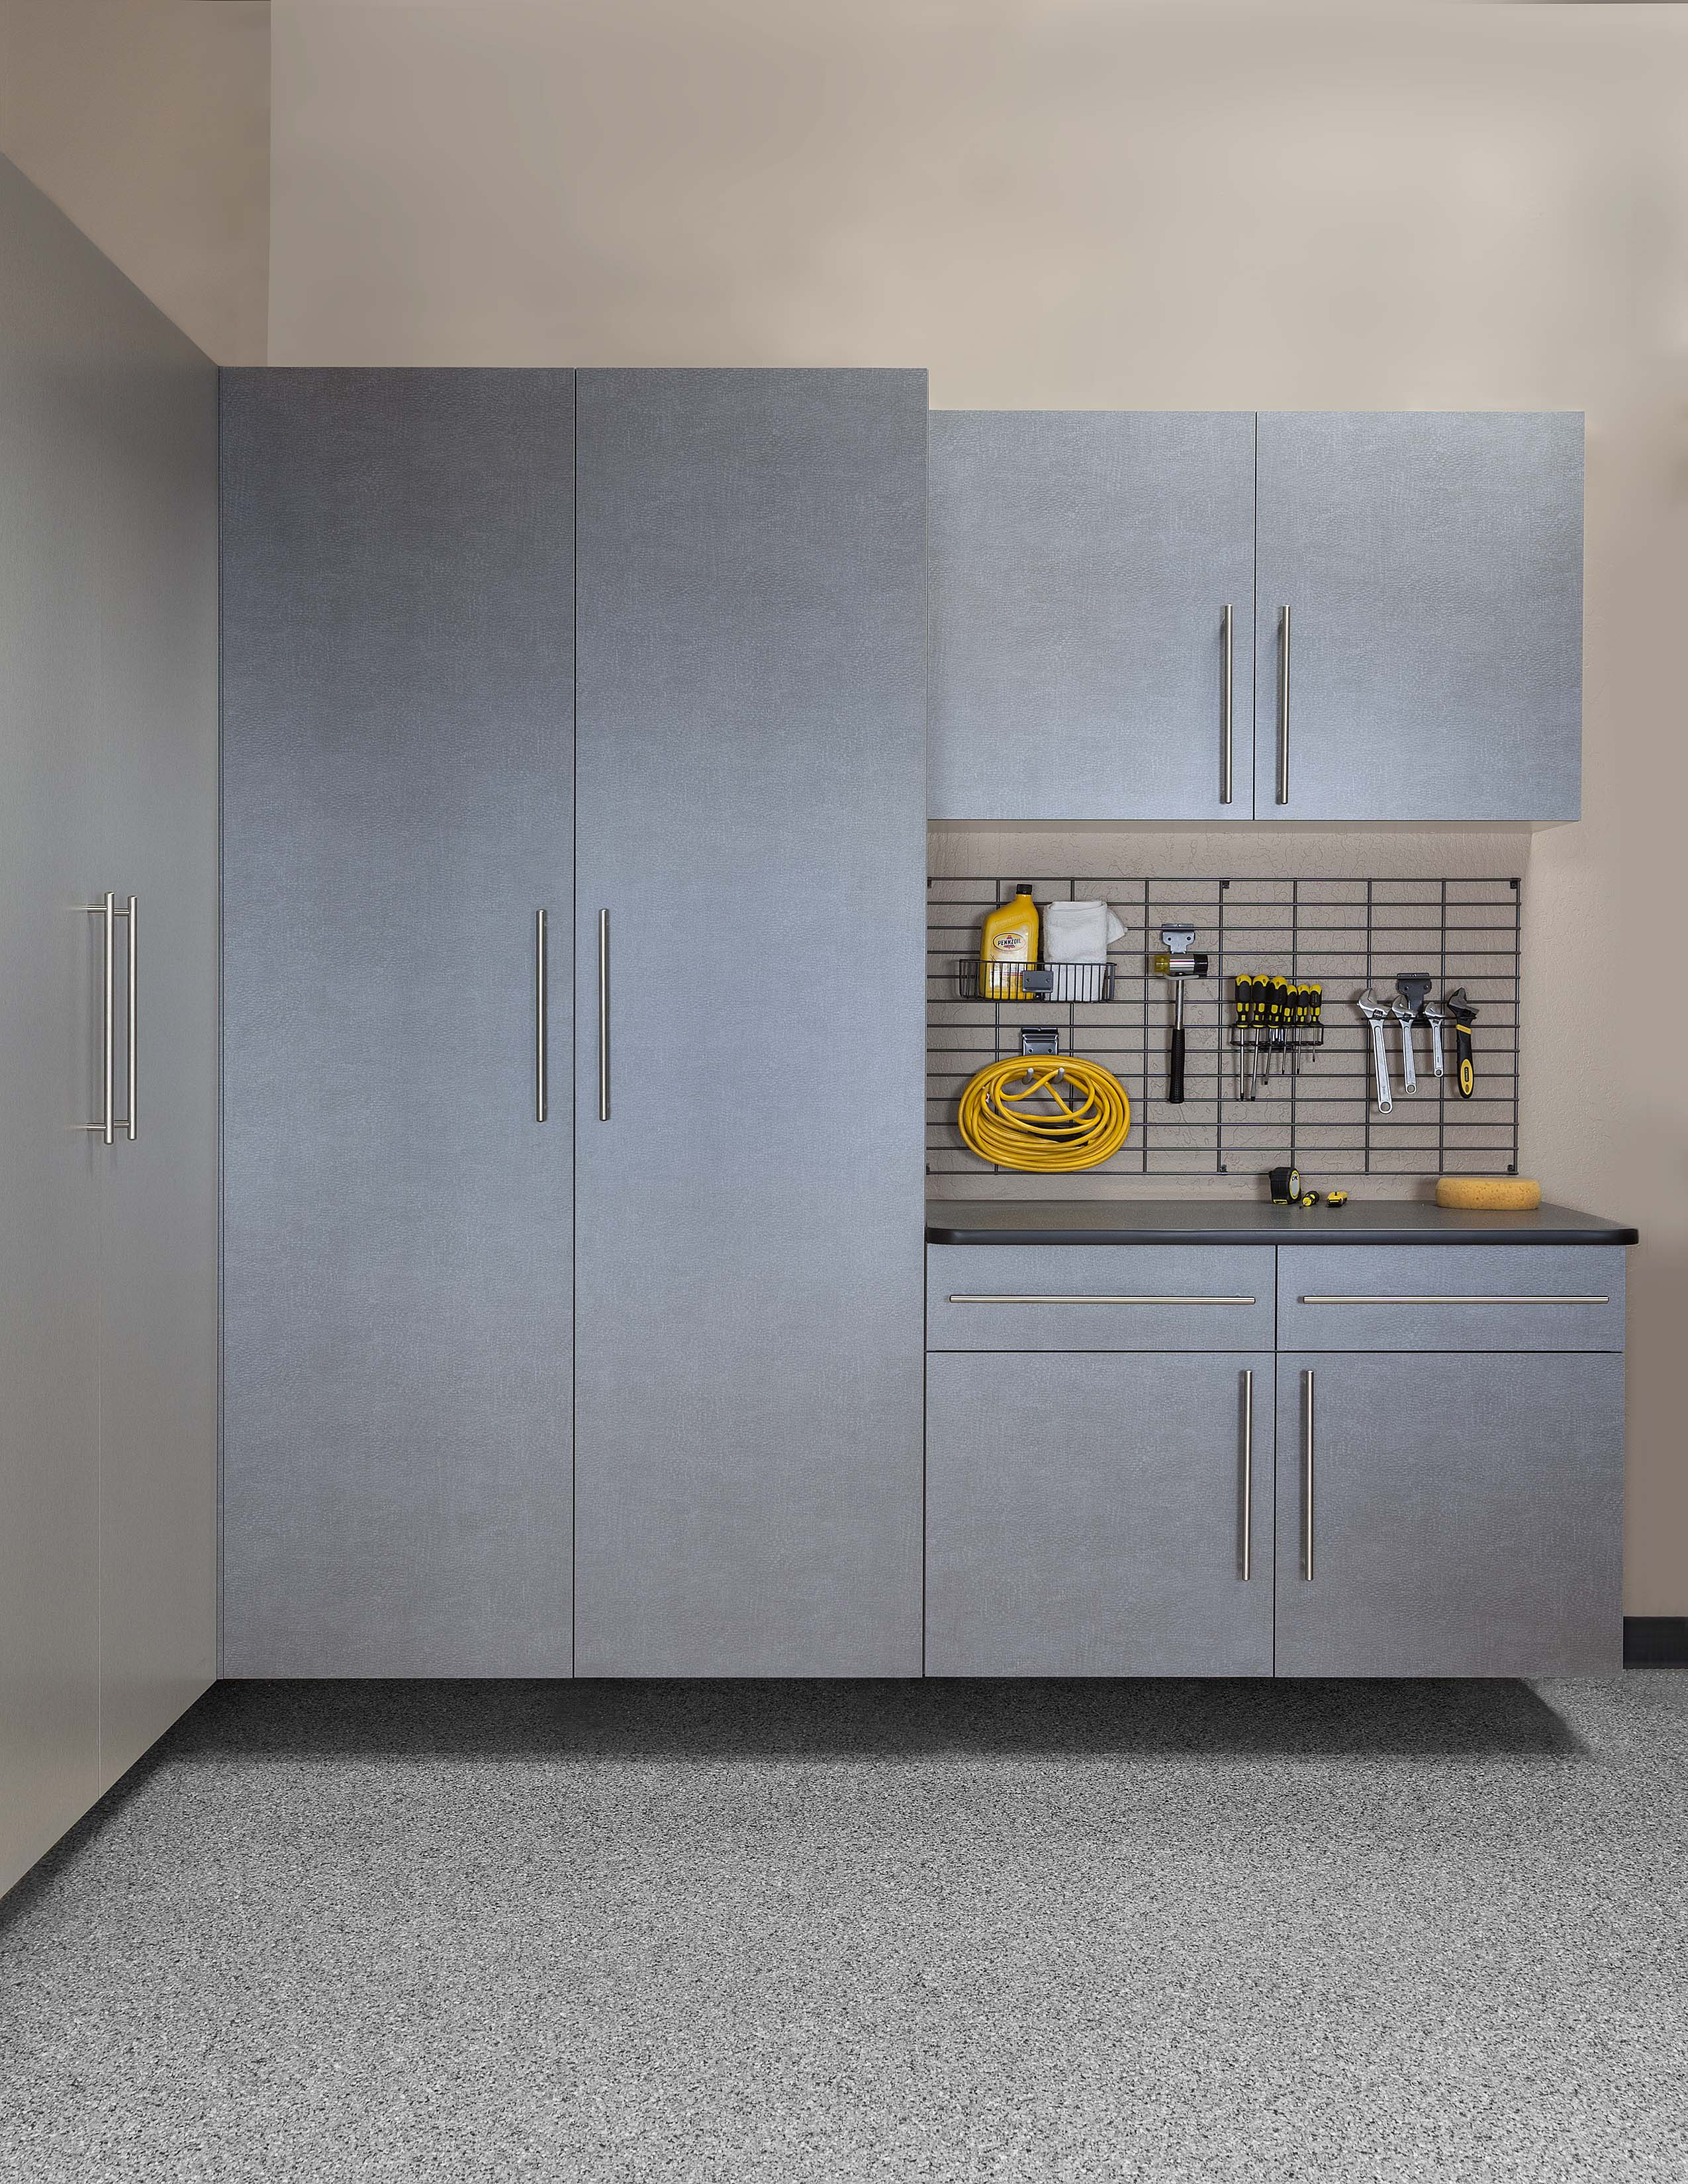 Pewter Cabinets with Ebony Workbench - Grid Wall